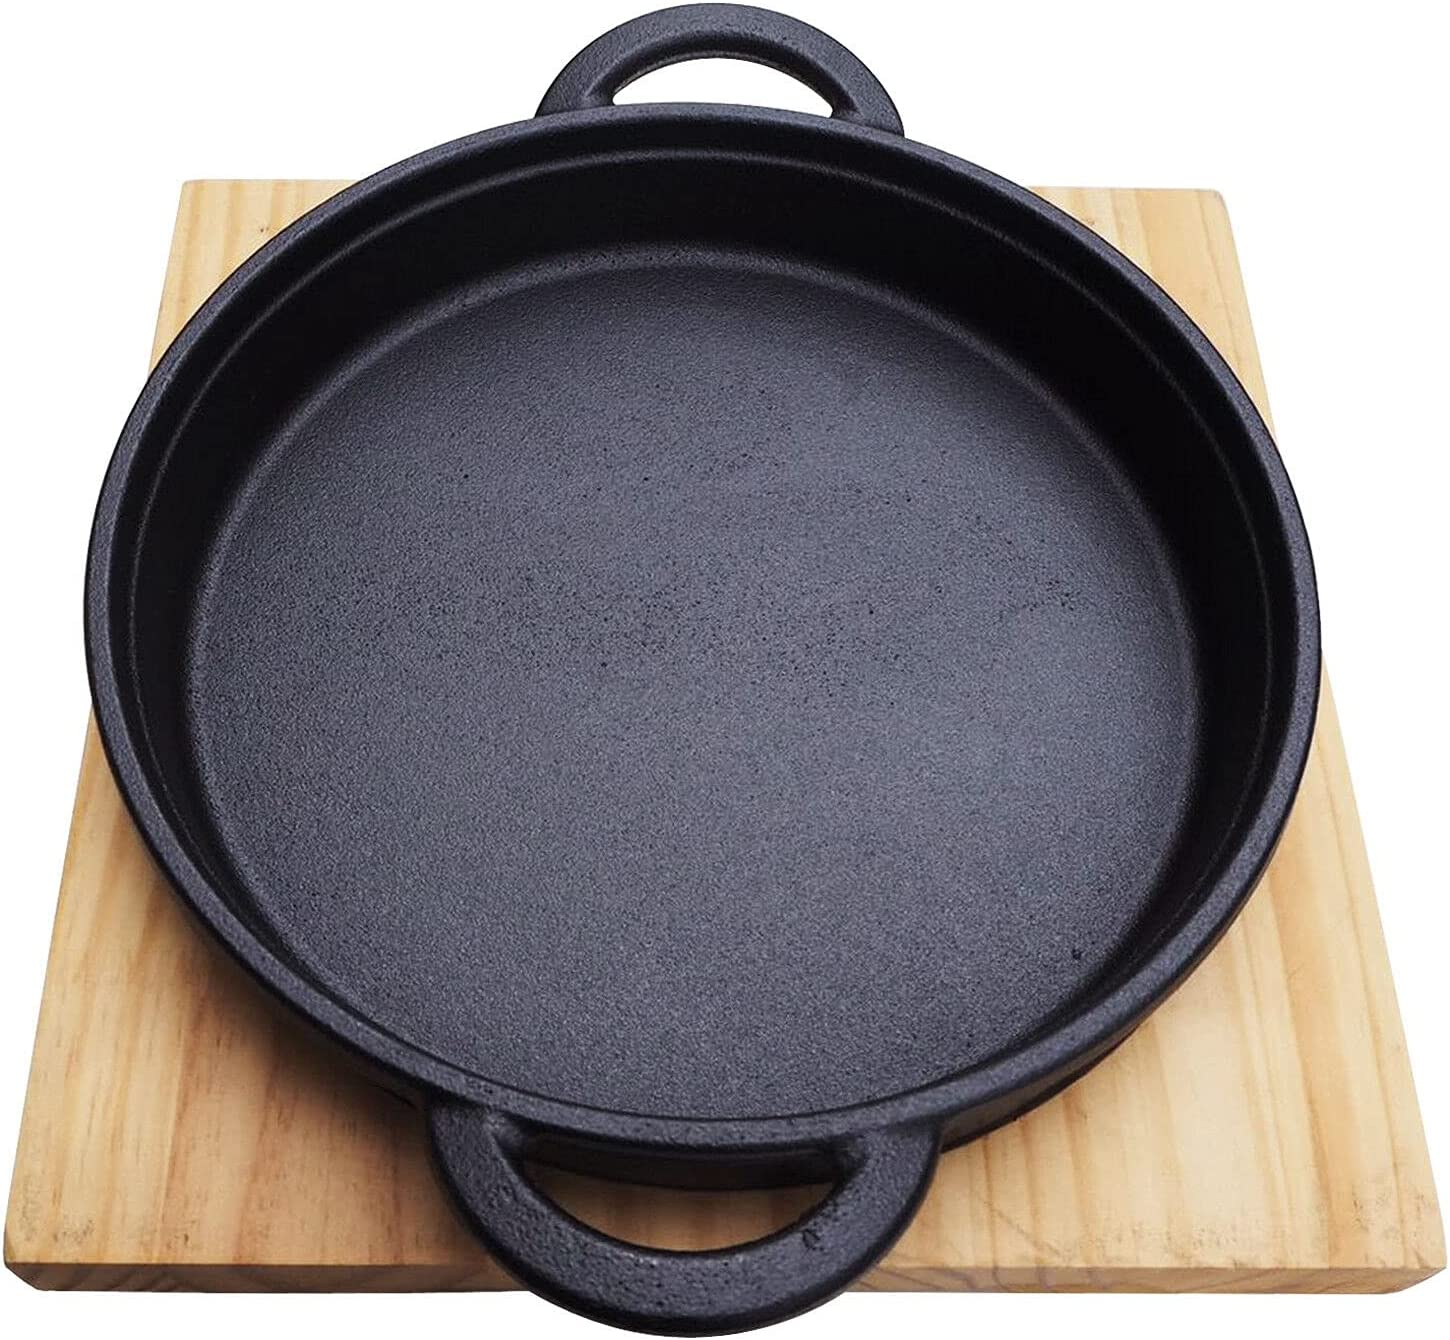 ADHW Cast Iron Cookware Large special price Frying Pan wit Skillet Selling Backing Pot Grill